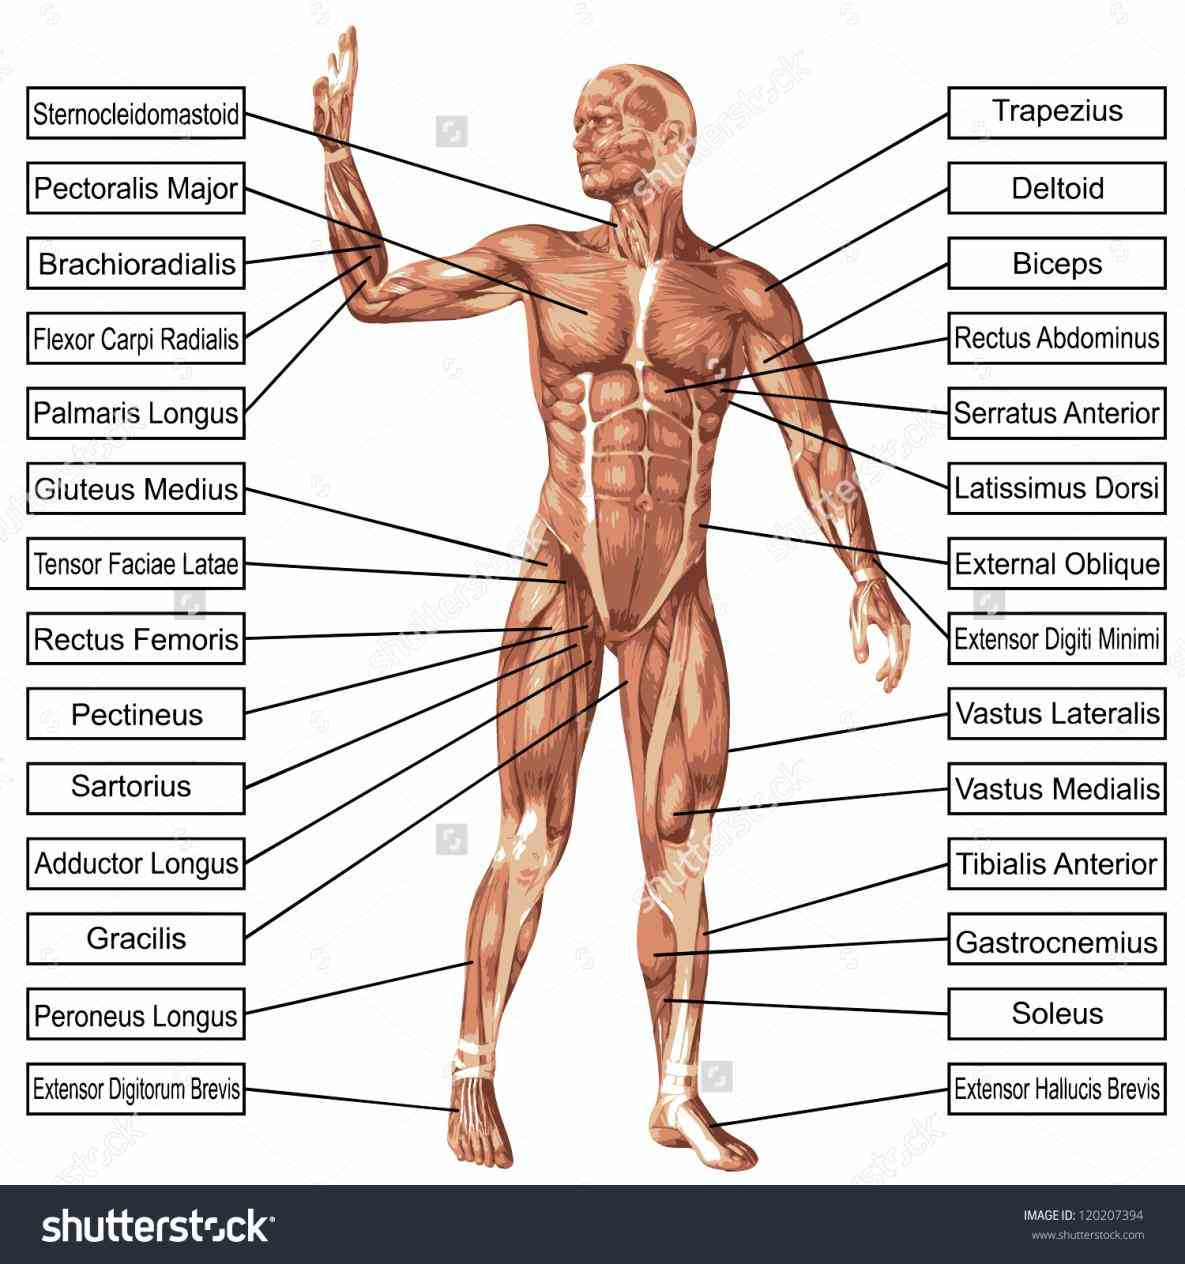 The Human Body video is for educational purposes only!!! we are looking at normans model muscles in muscles Muscle